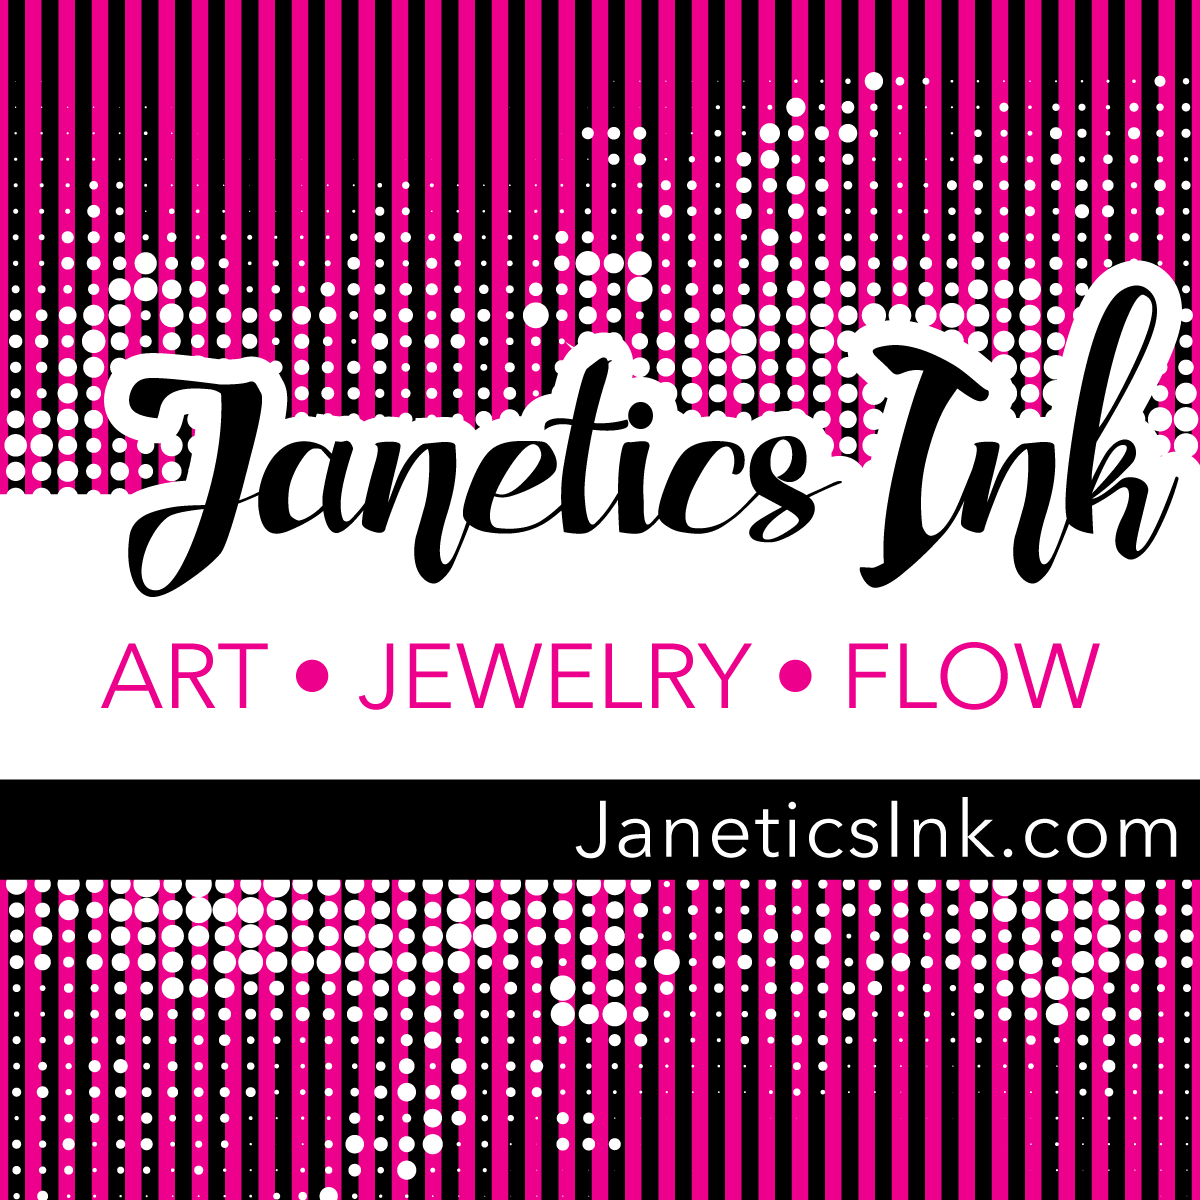 Janetics Ink